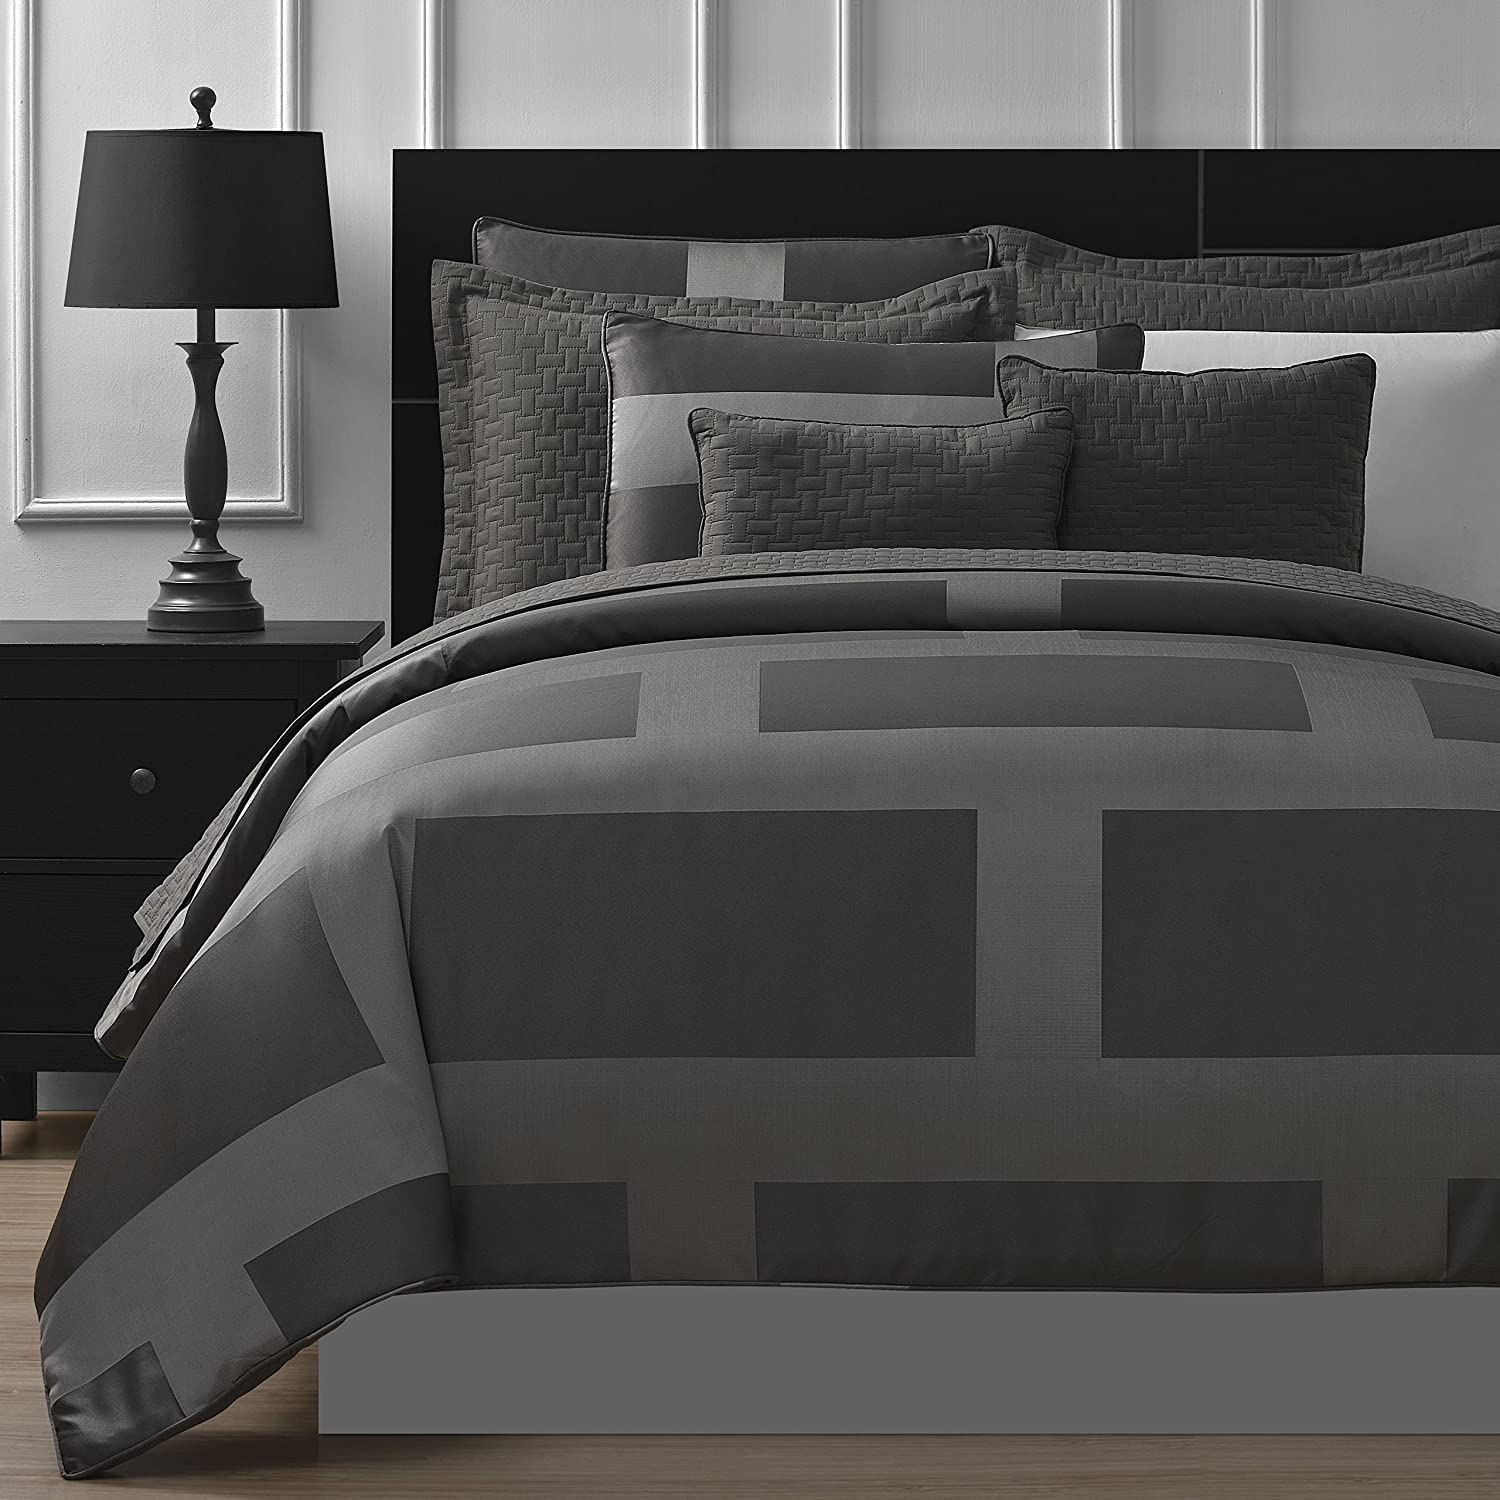 Jacquard Microfiber 5-Piece Comforter Set (King, Gray)